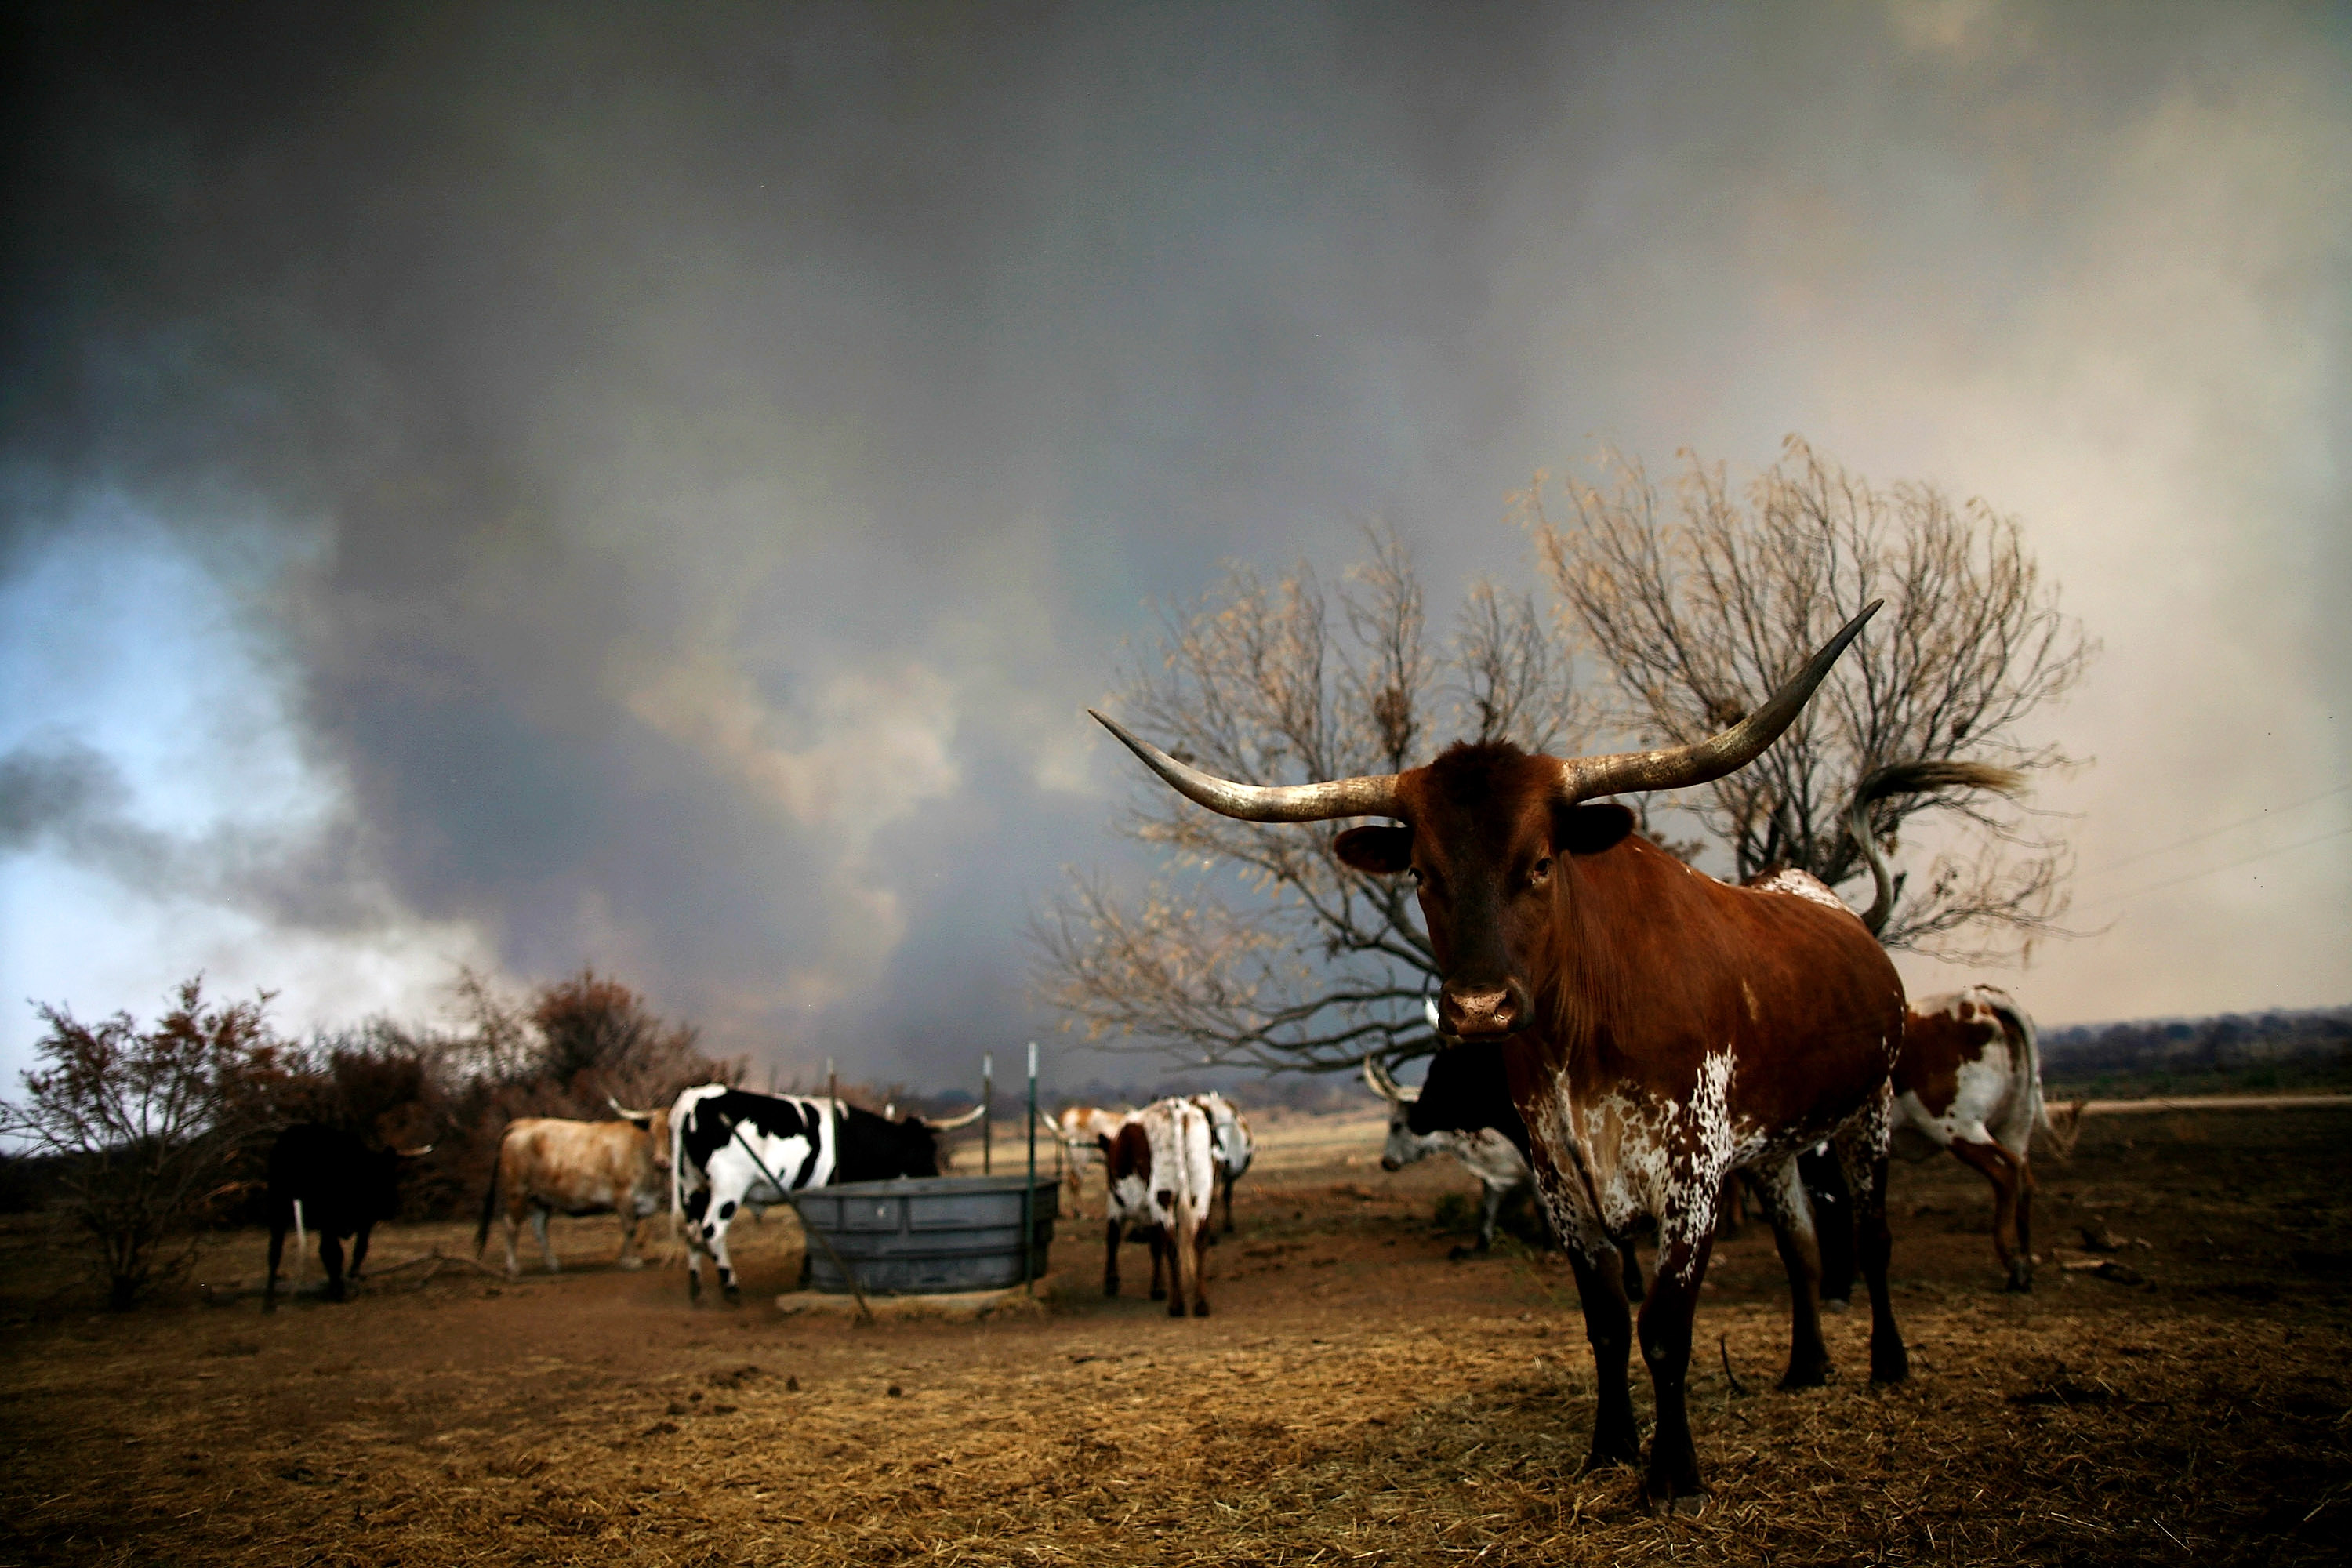 A herd of longhorn cattle stand as wildfire rages near on September 1, 2011 in Graford, Texas